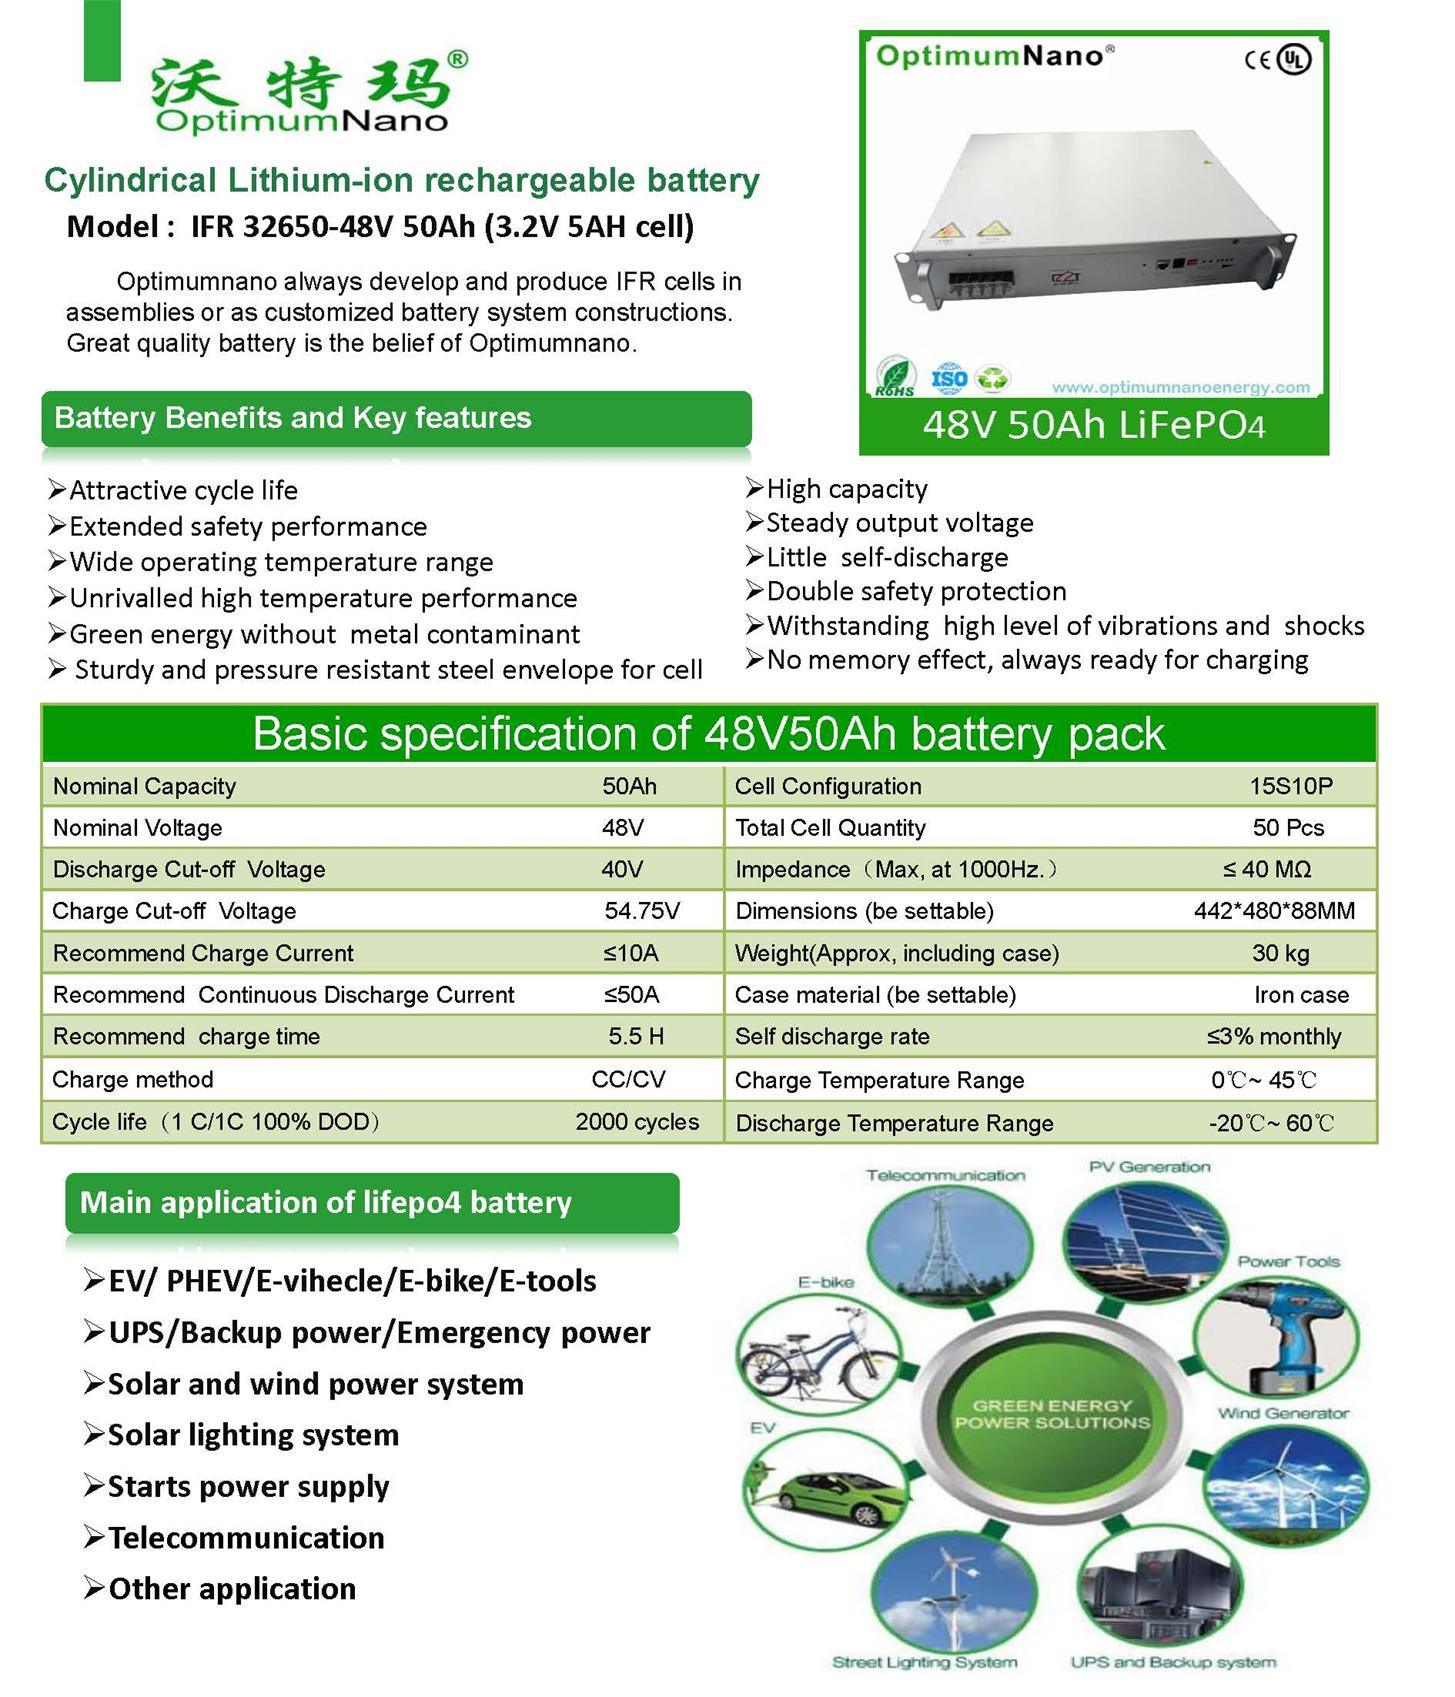 Deep Cycle 48V 50ah LiFePO4 Battery Packs for Telecom Communication